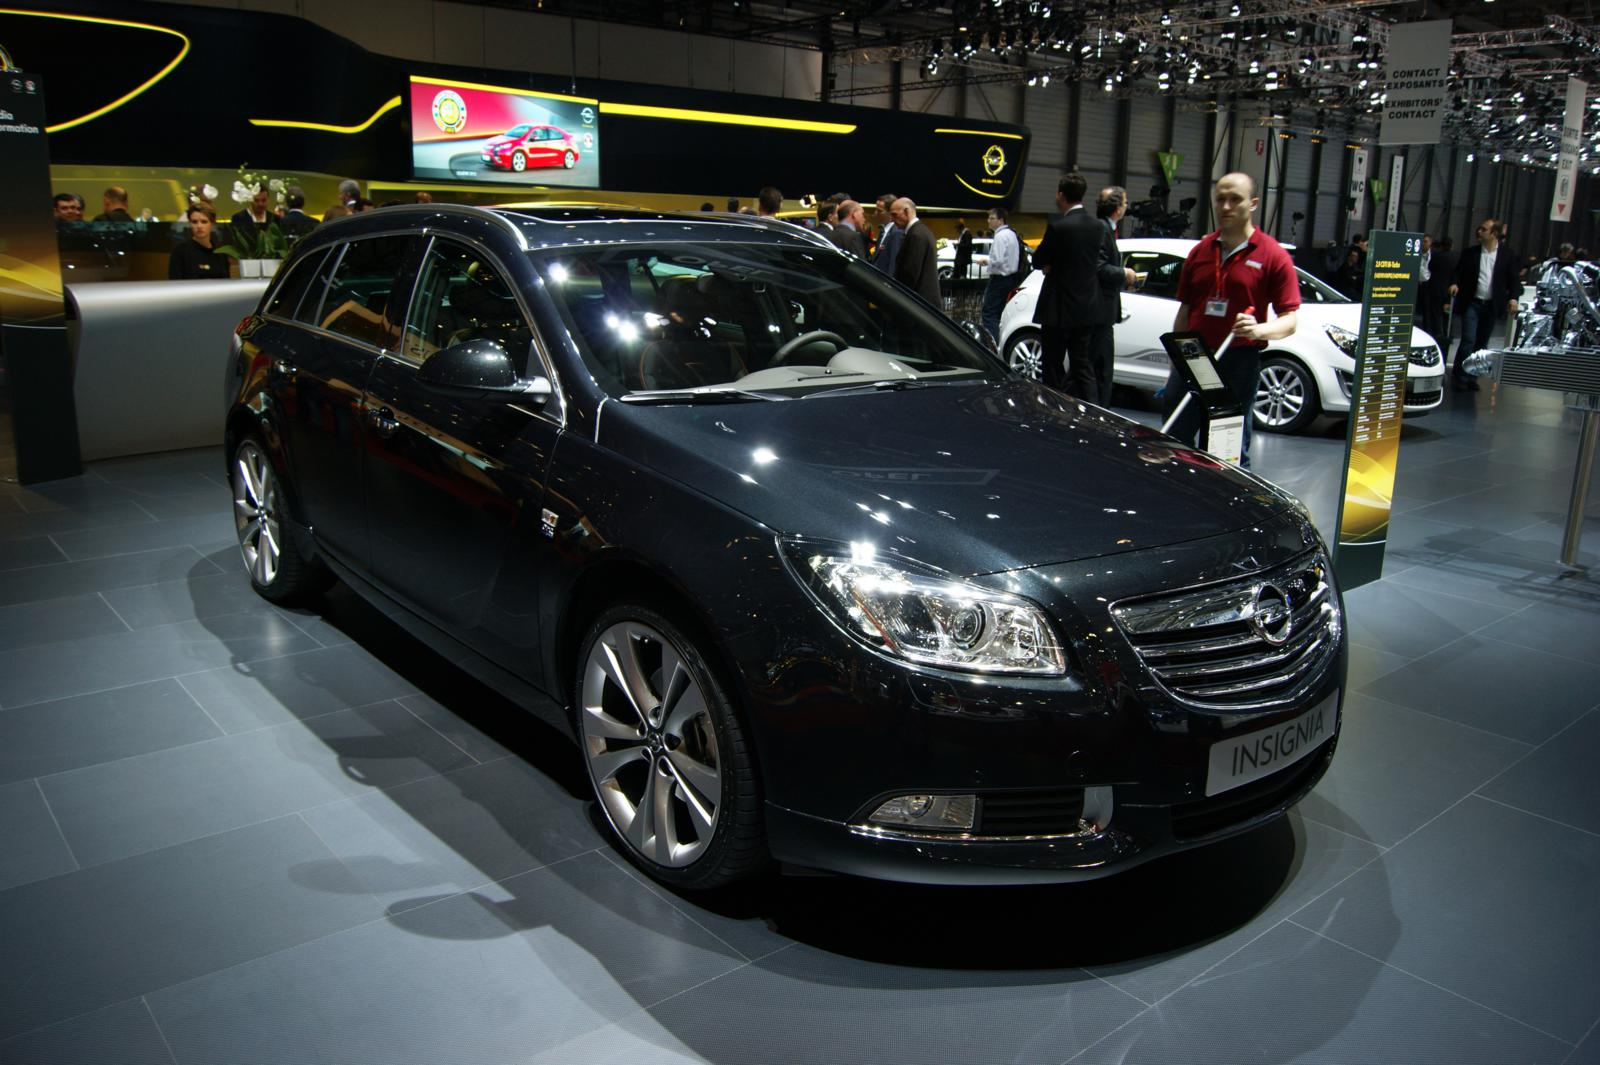 geneva 2012 vauxhall insignia biturbo front seat driver. Black Bedroom Furniture Sets. Home Design Ideas